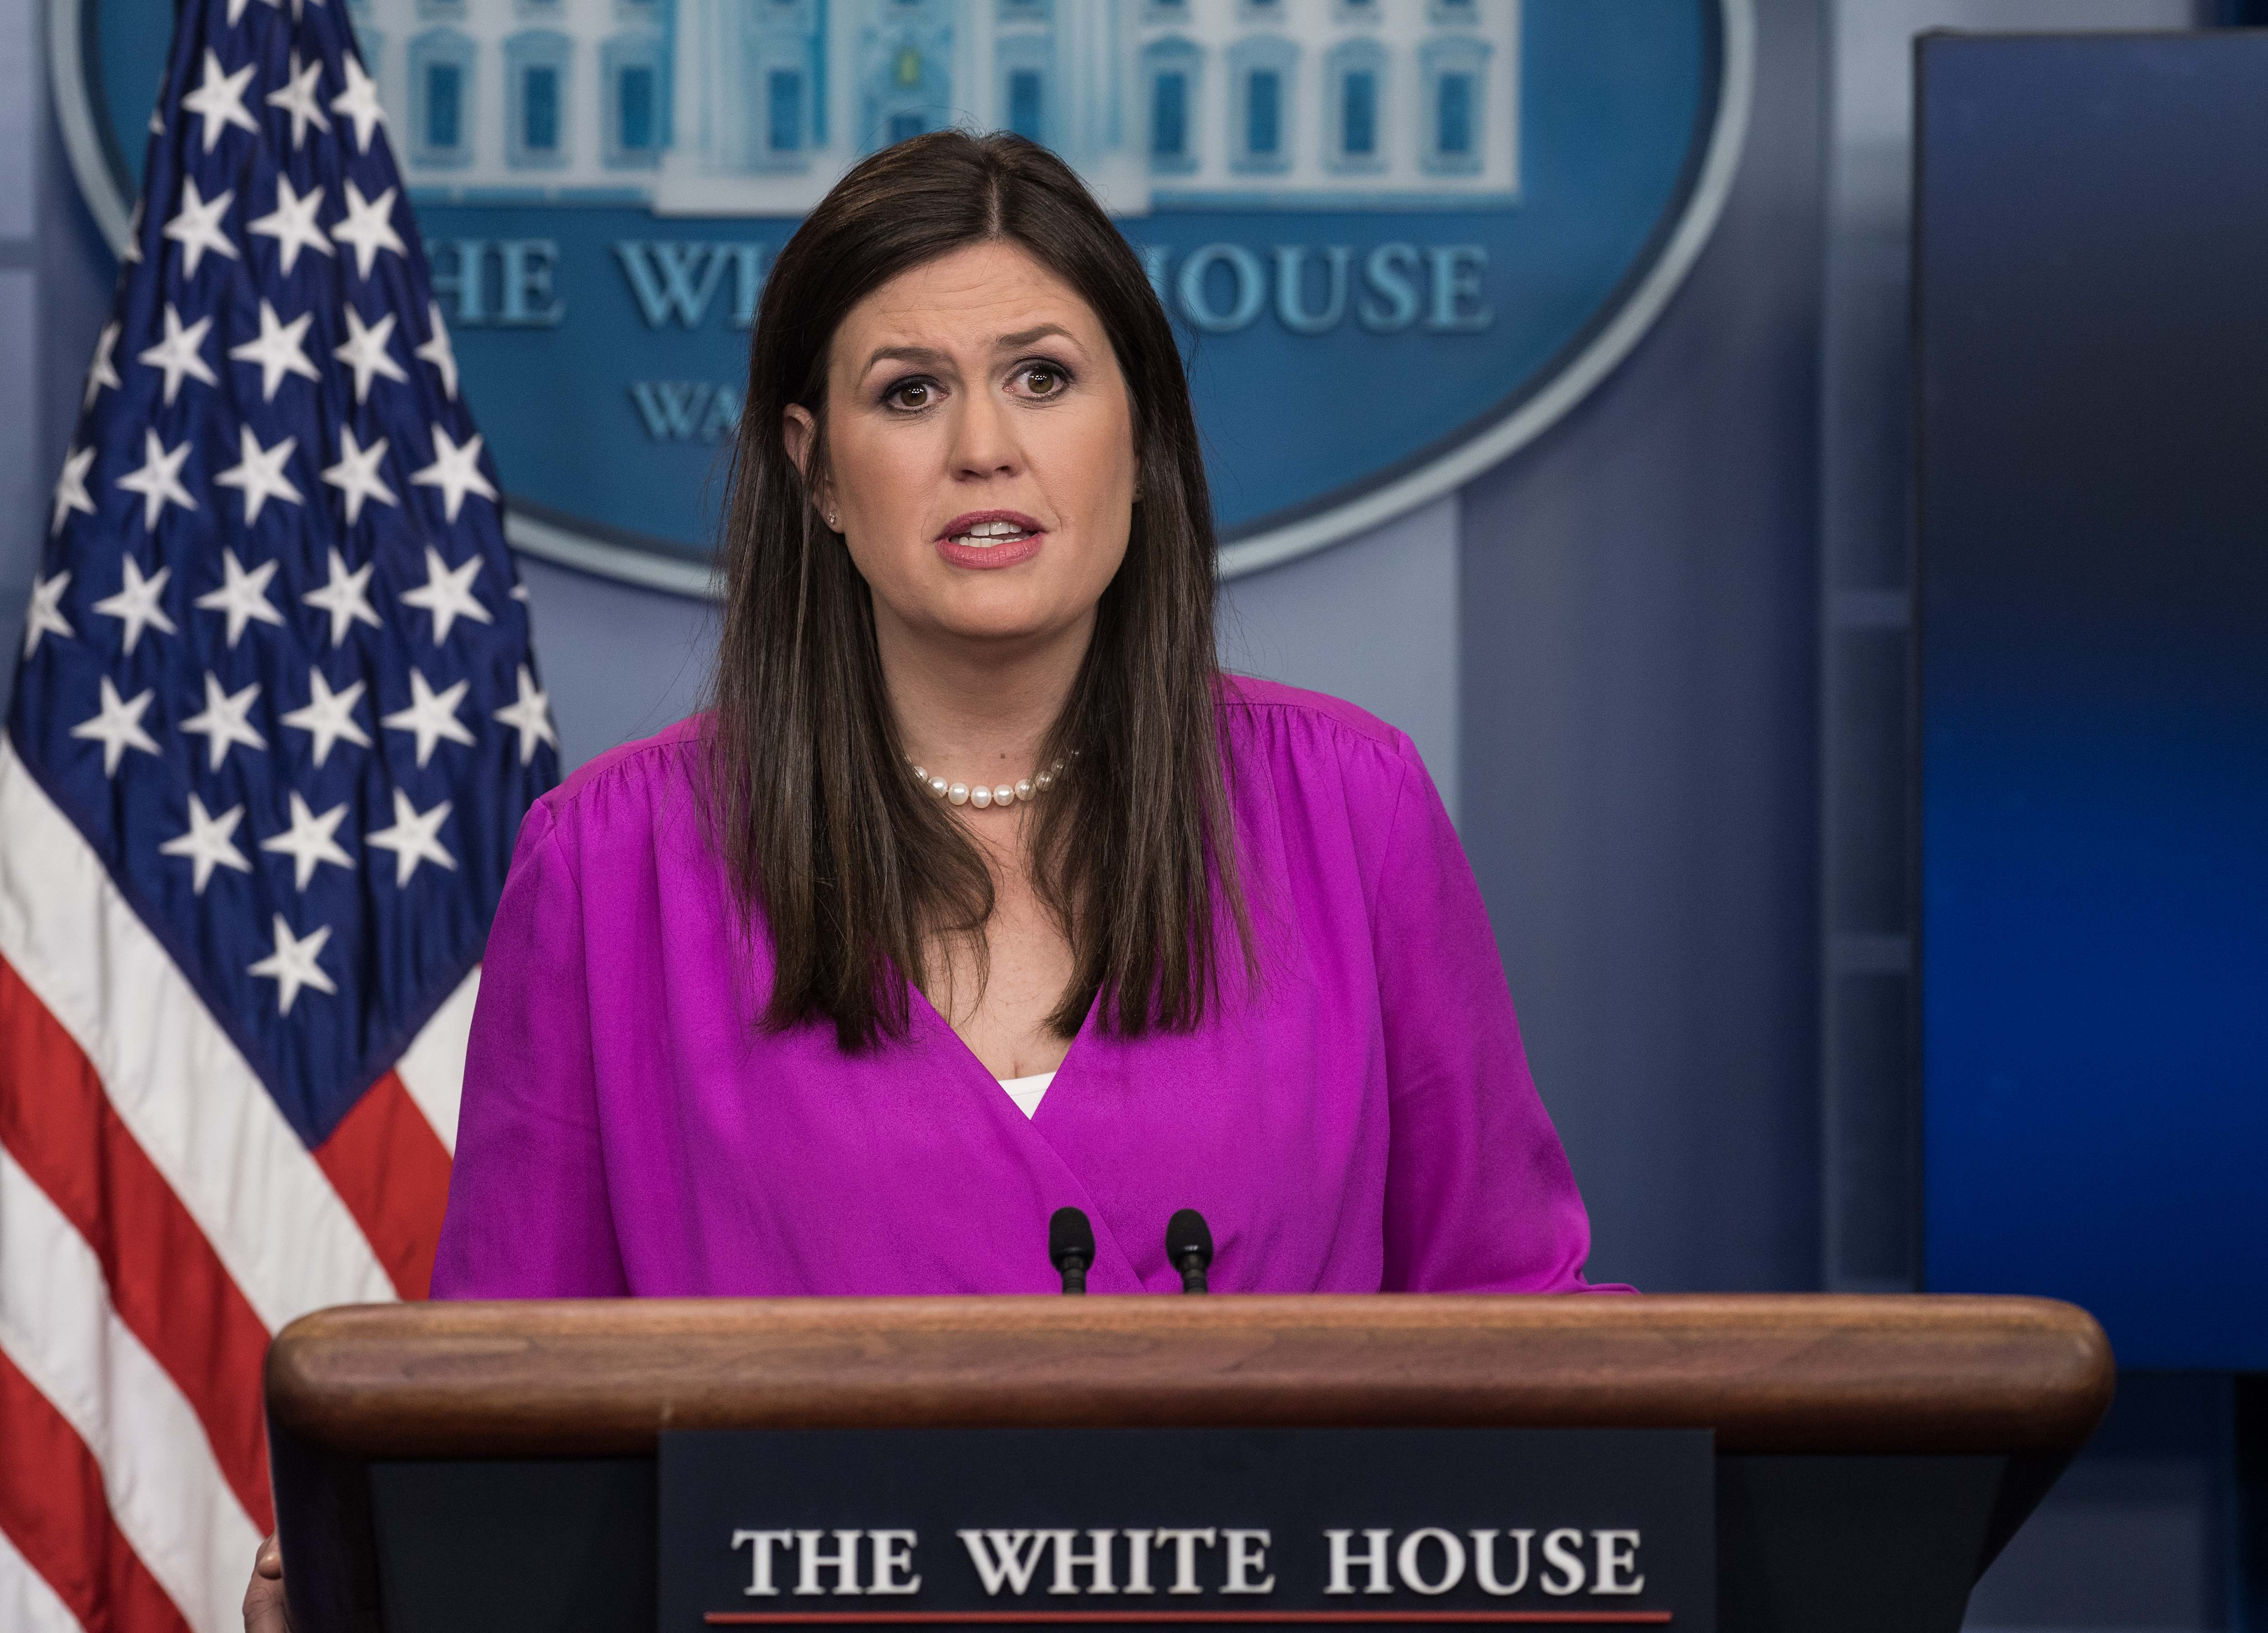 White House Press Secretary Sarah Huckabee Sanders speaks at the press briefing at the White House in Washington, DC, on June 27, 2017. (Nicholas Kamm/AFP/Getty Images)